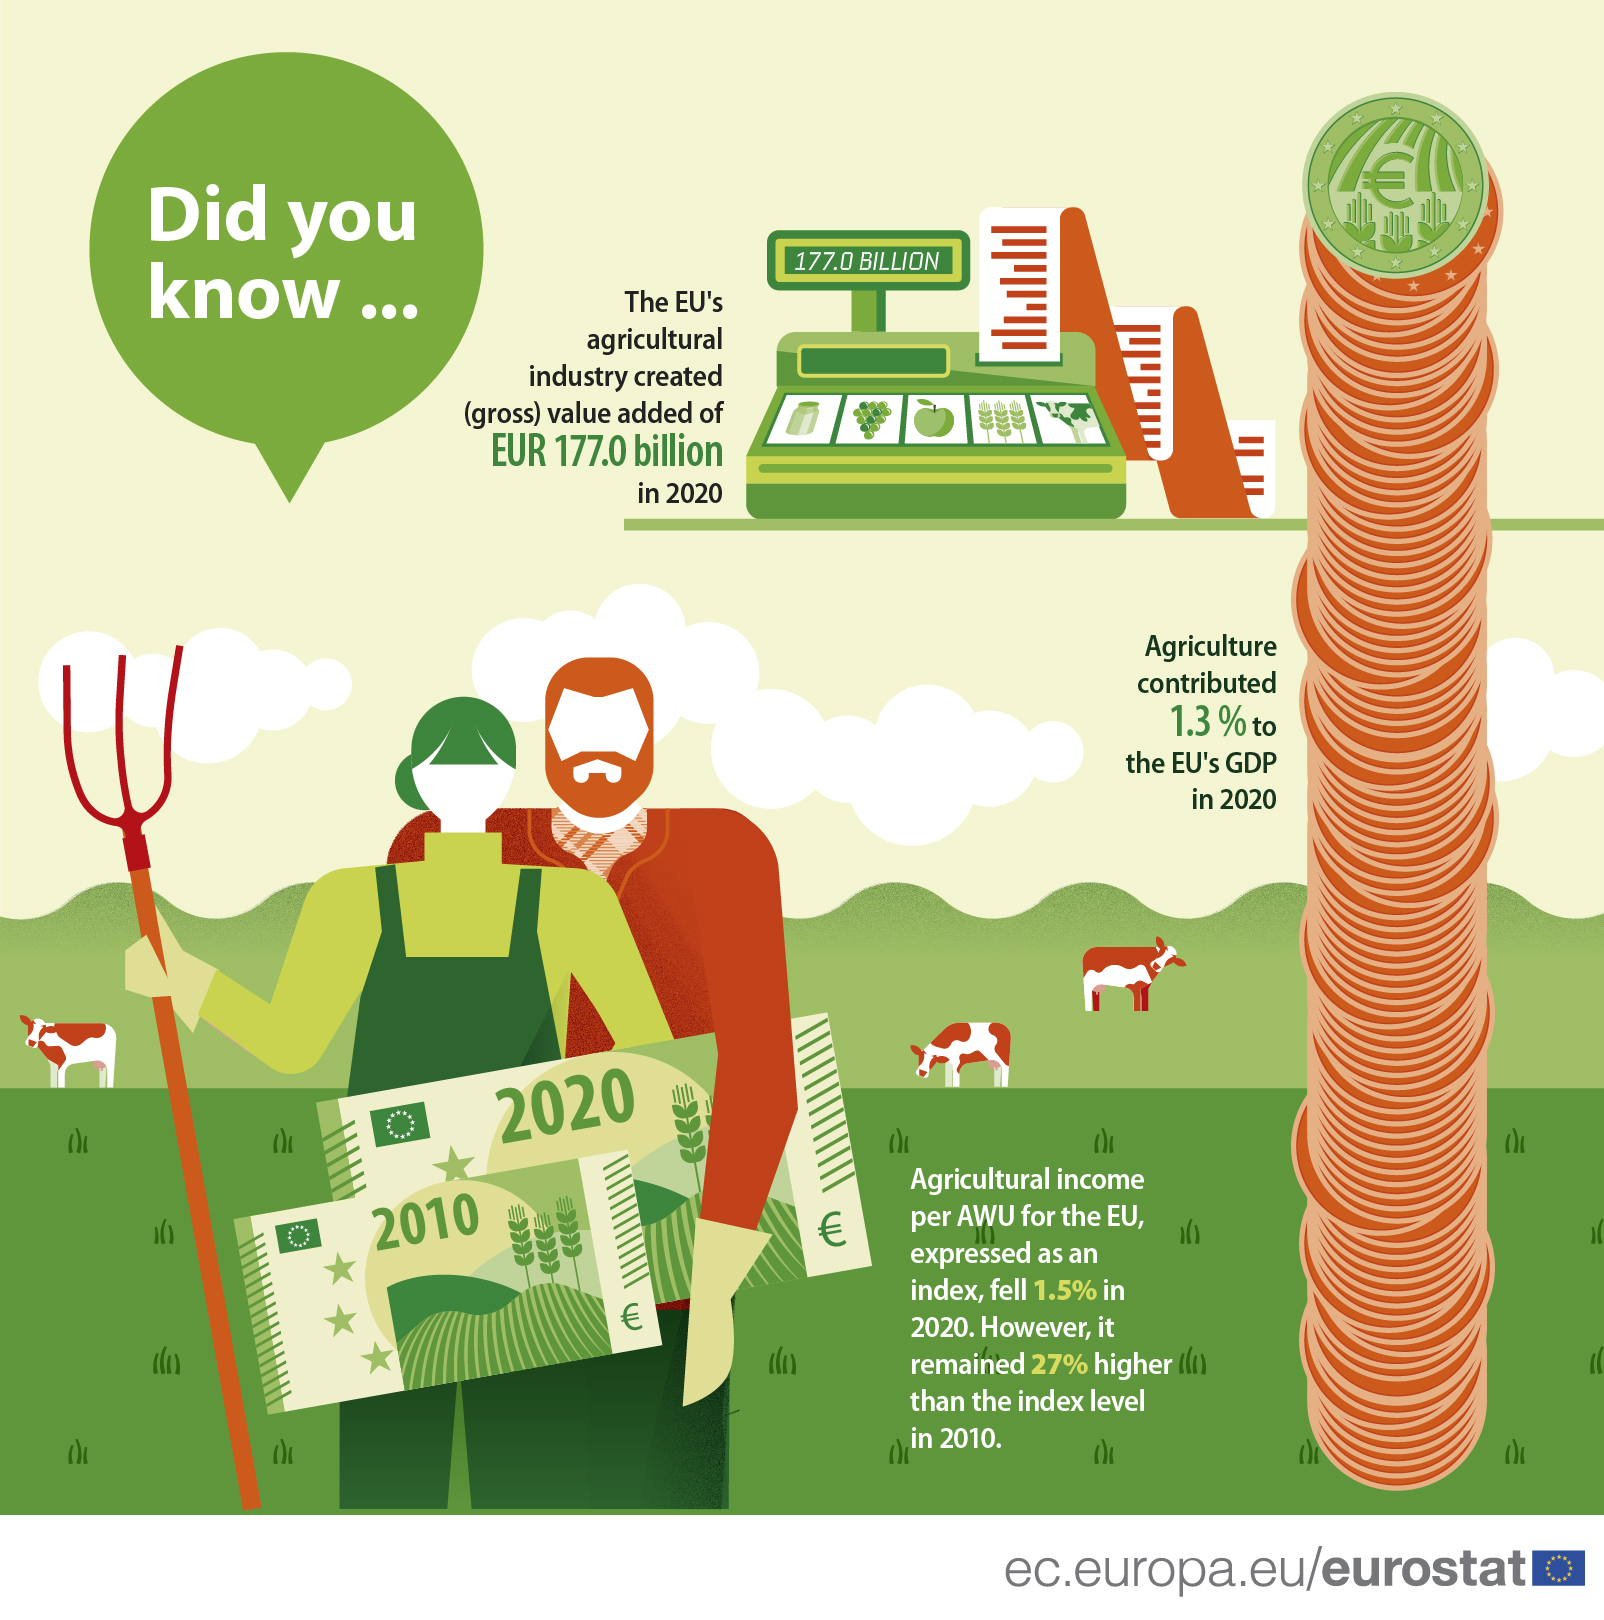 Infographic on the key data on the performance of the agricultural sector in the EU, 2020 data